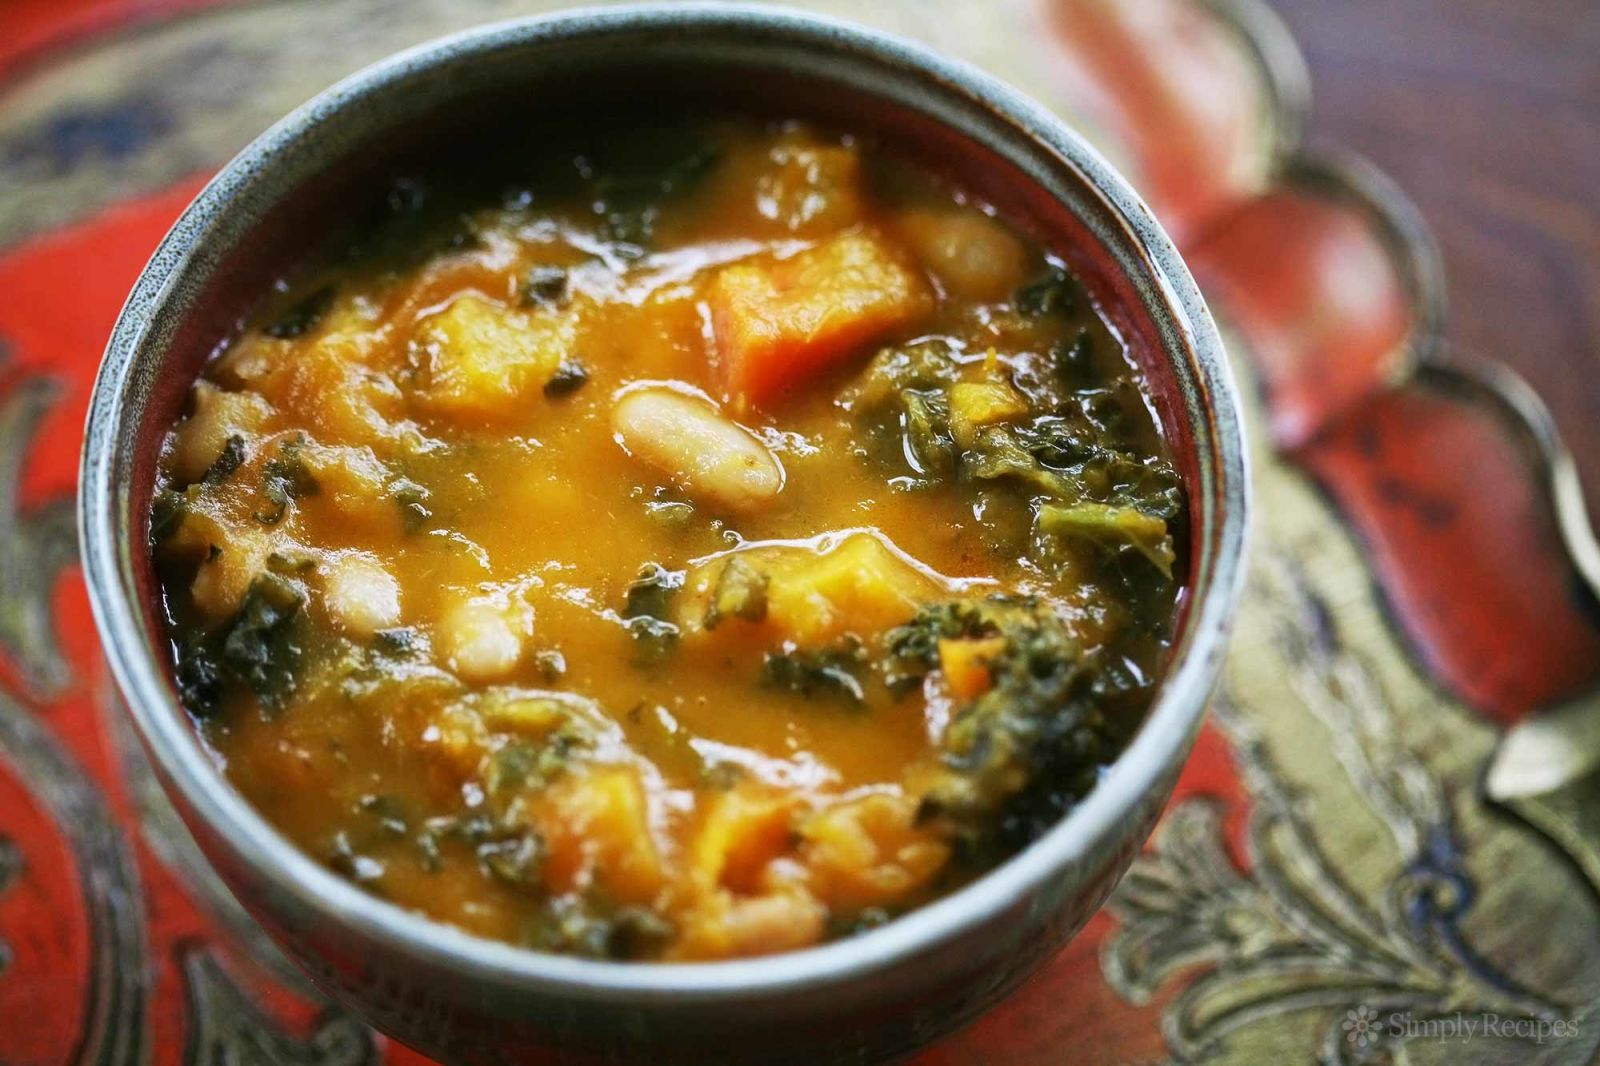 50 Homemade Vegetable Soup Recipes - How To Make Vegetable Soup ...